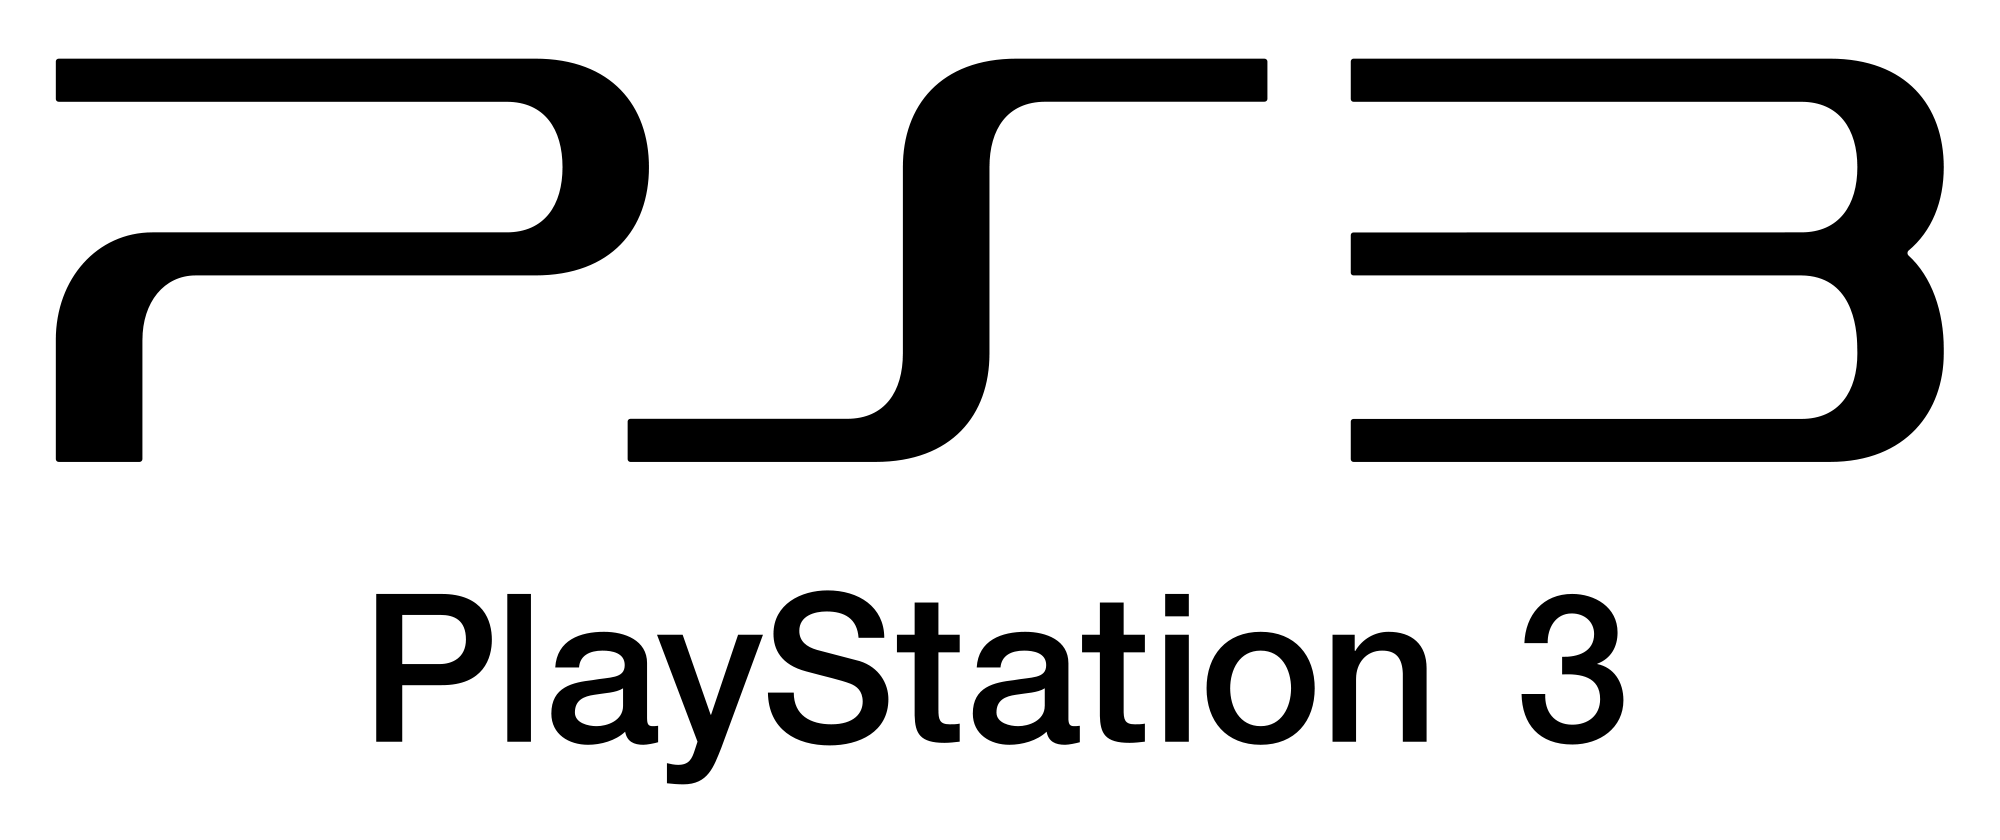 Playstation 3 logo png. File neu svg wikimedia